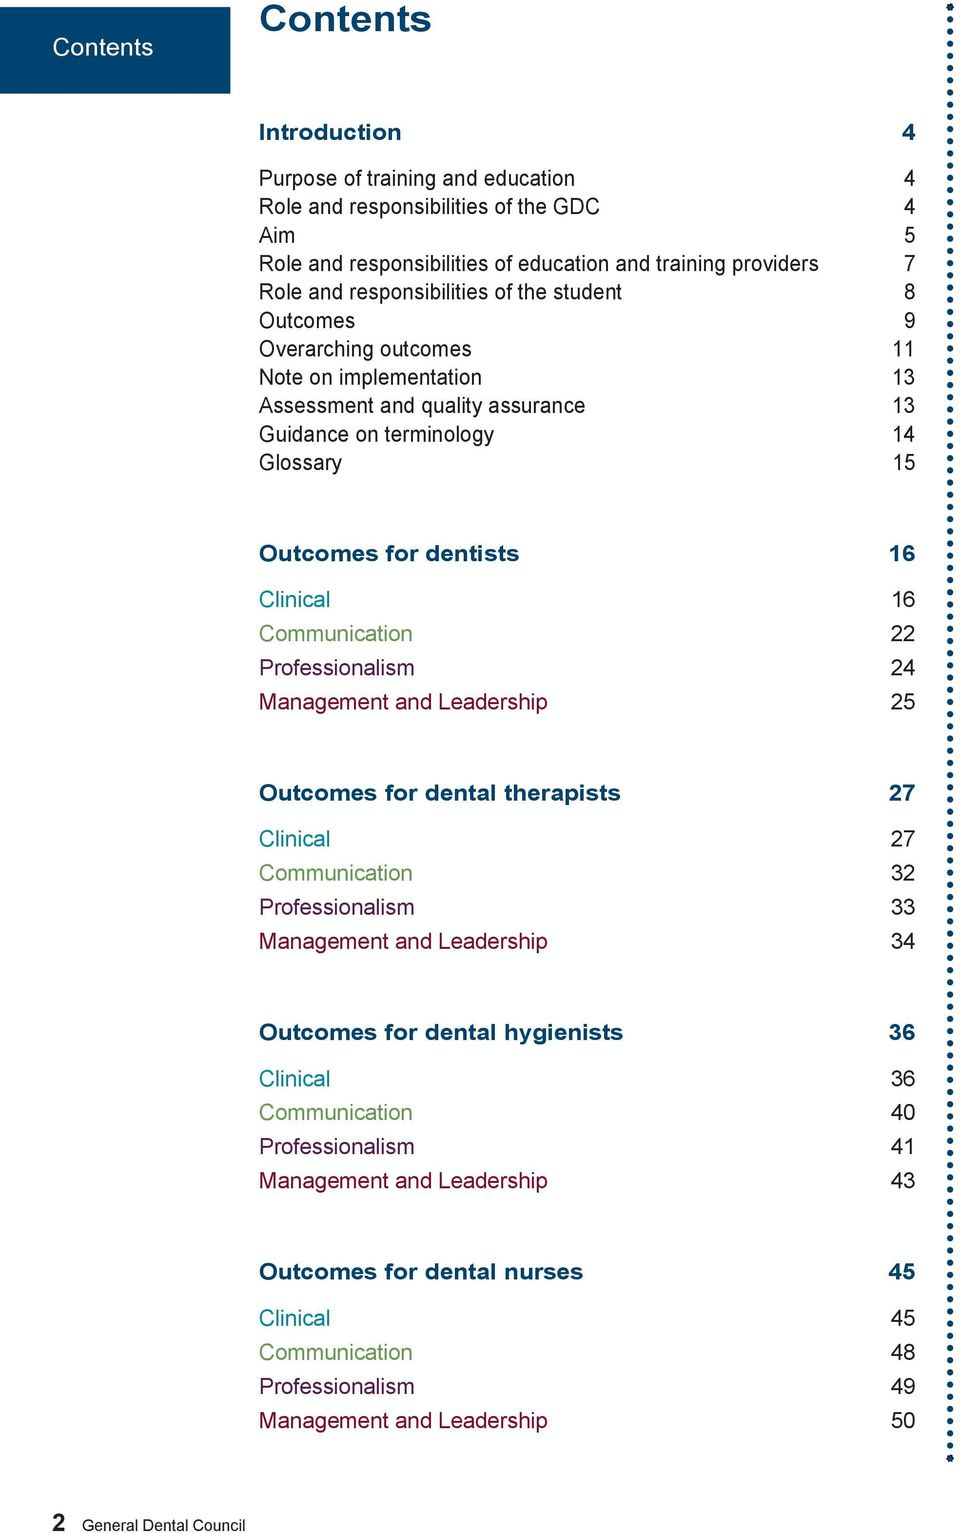 Outcomes for dentists 16 16 Communication 22 Professionalism 24 Management and Leadership 25 Outcomes for 27 27 Communication 32 Professionalism 33 Management and Leadership 34